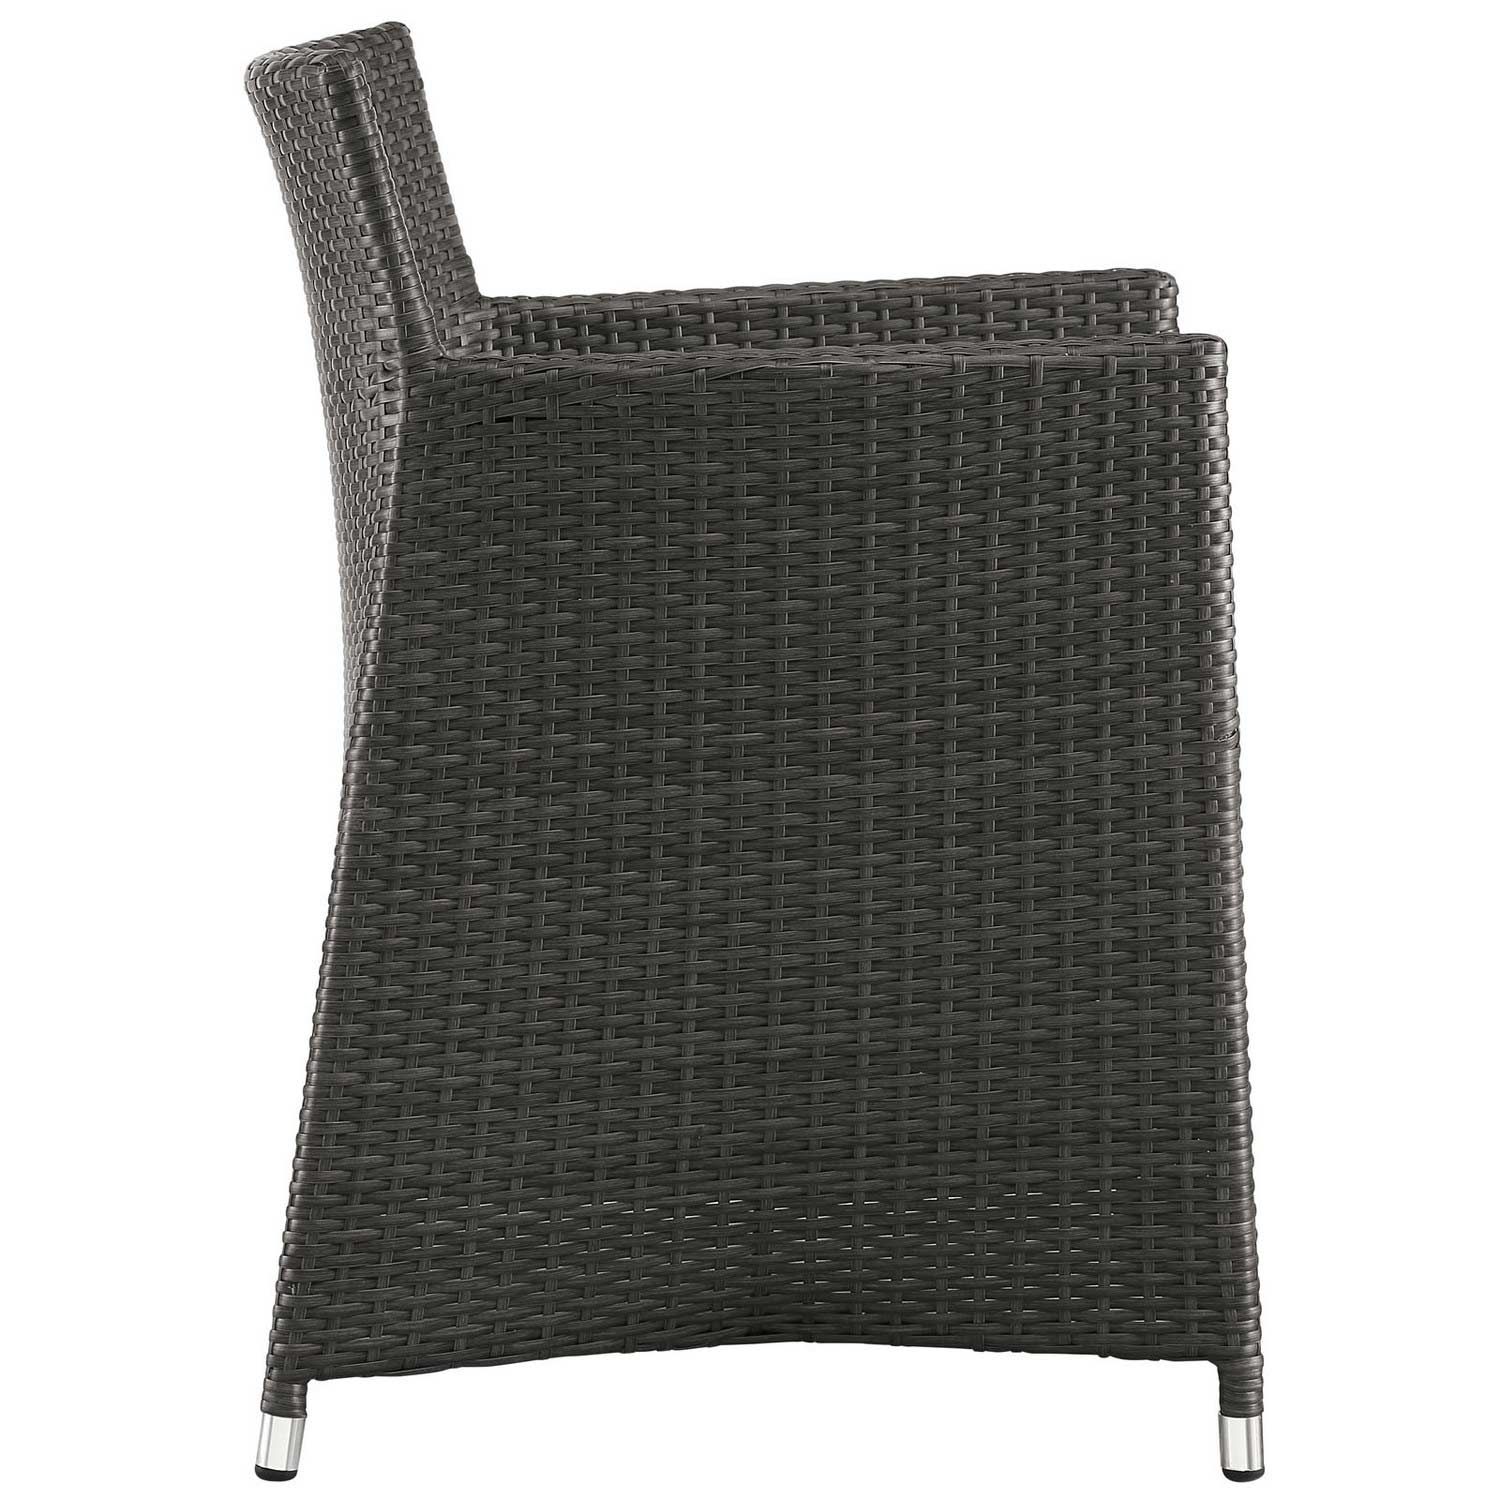 Modway Junction Outdoor Patio Armchair - Brown/White